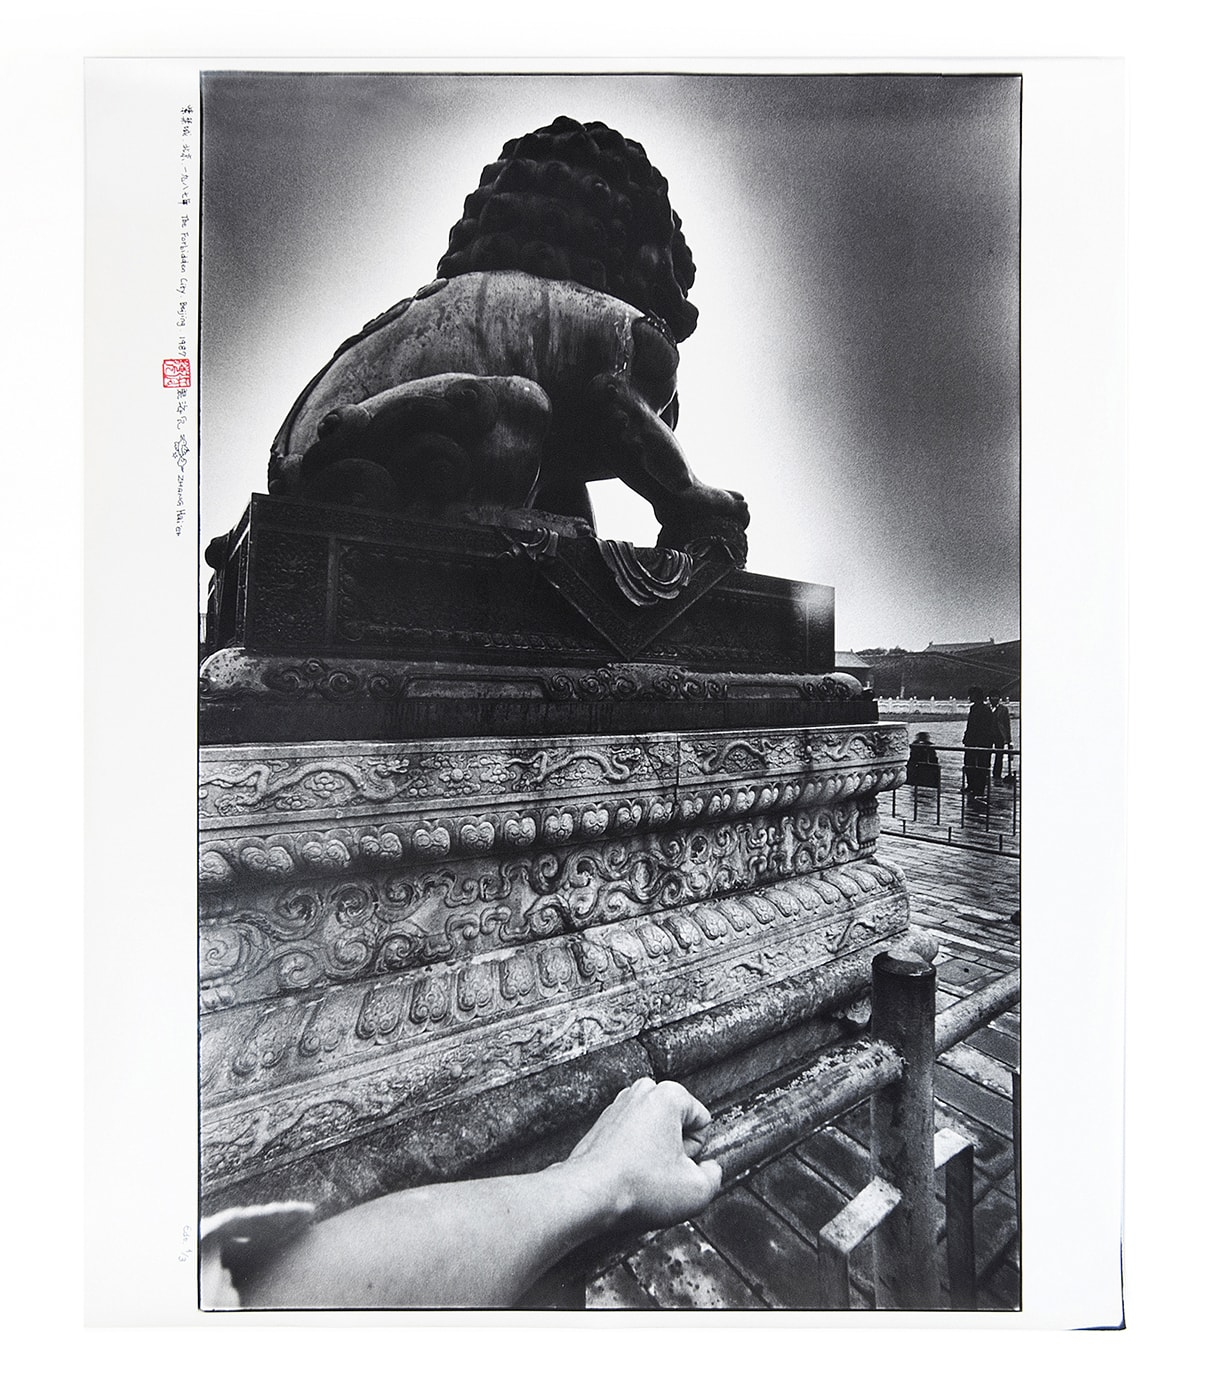 Zhang Haier   - The Forbidden City, Beijing 1987